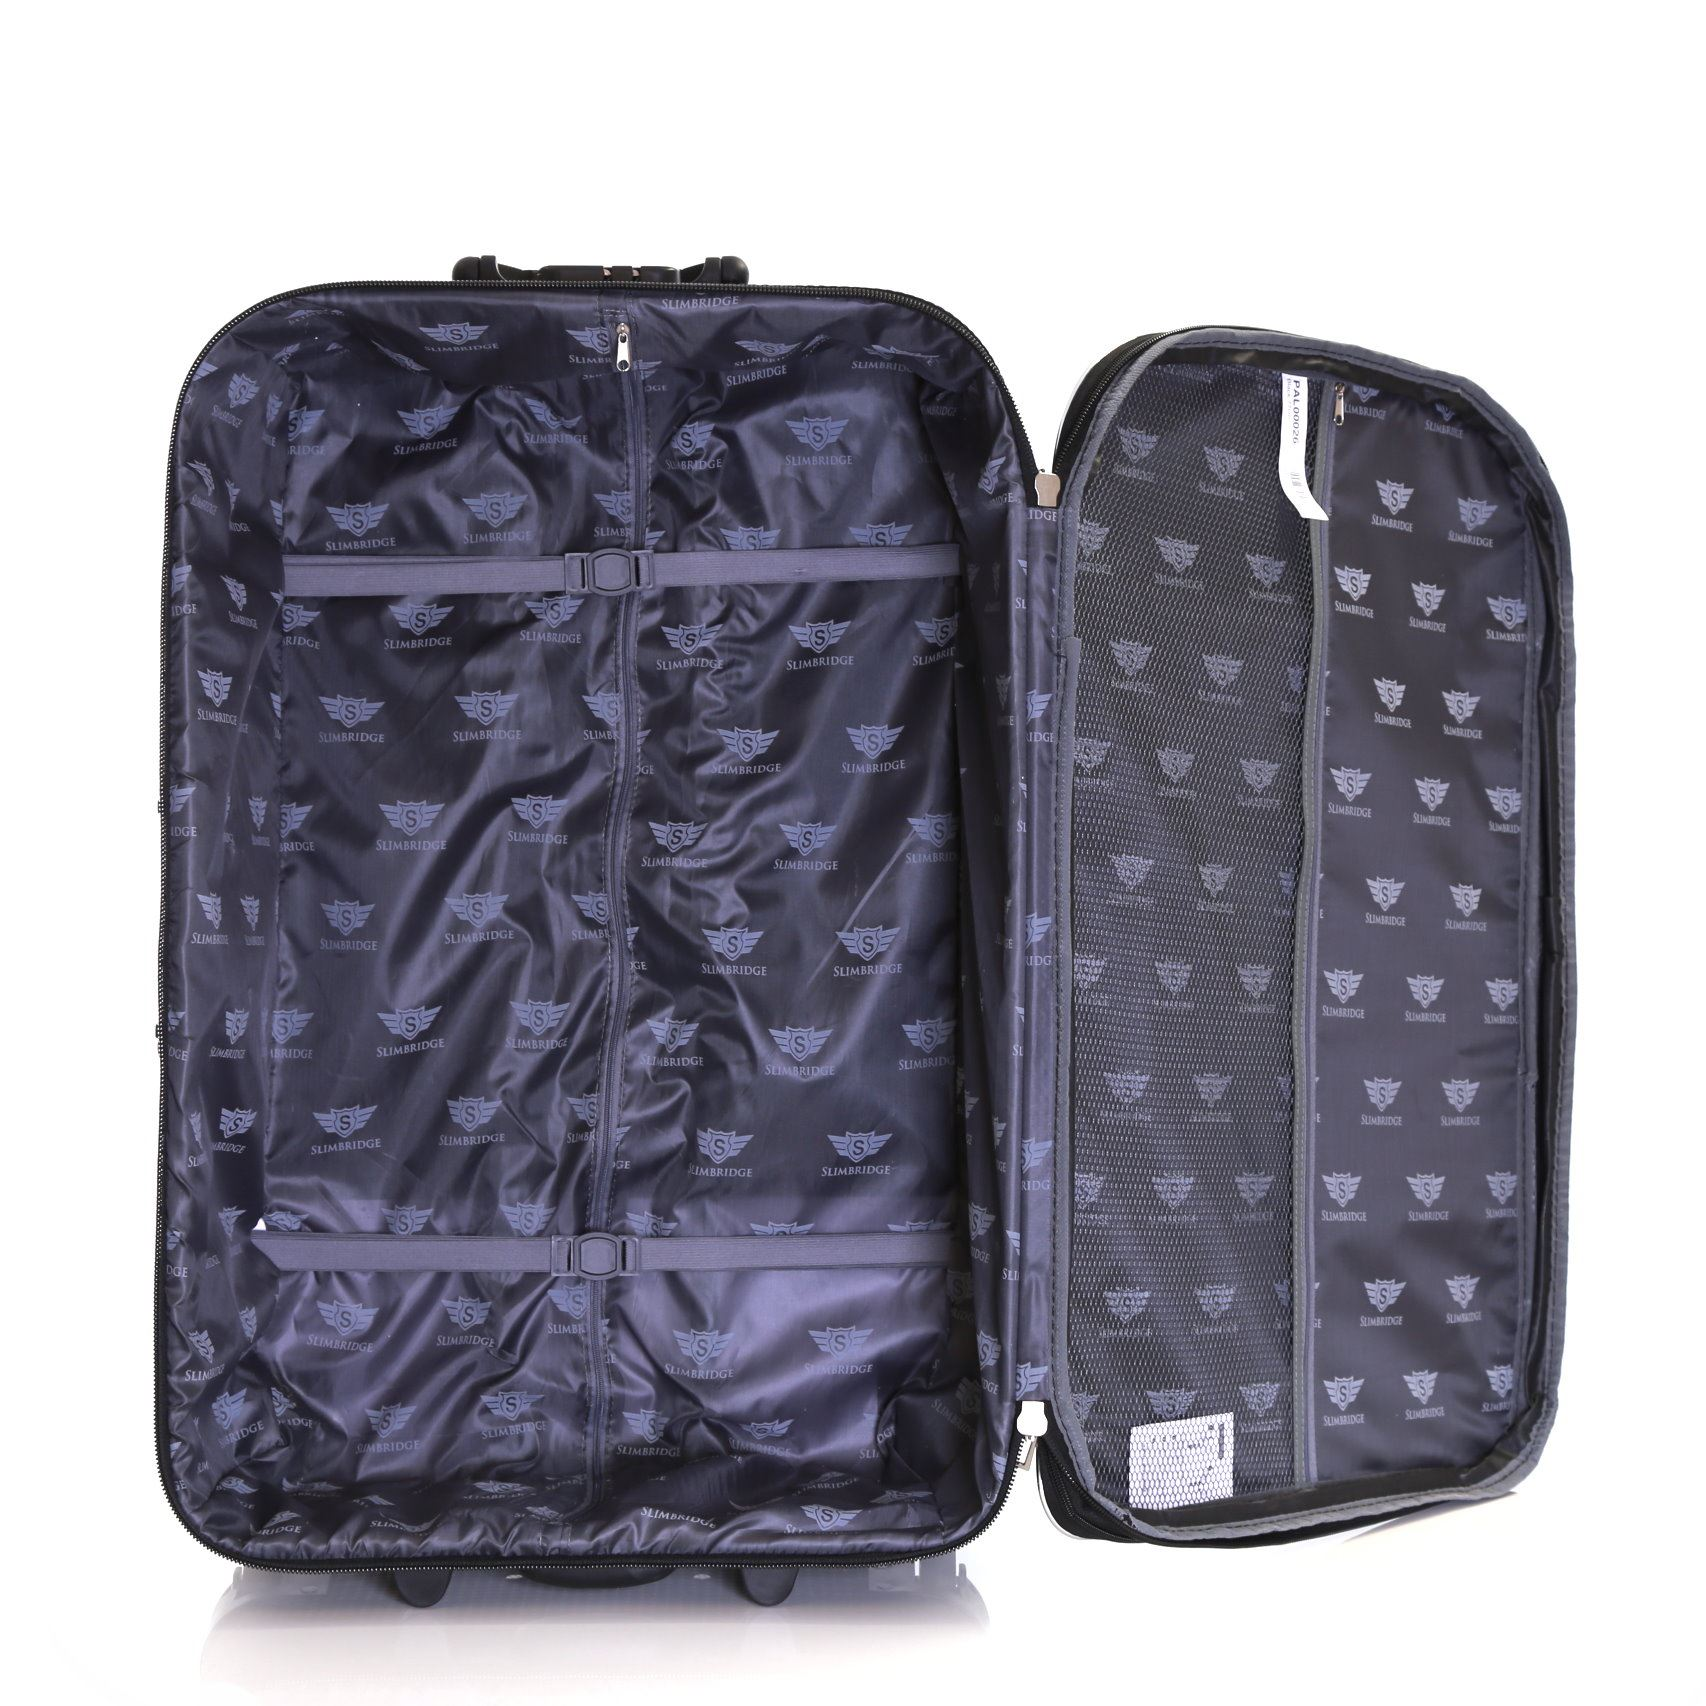 Set-of-2-Lightweight-Expandable-Luggage-Trolleys-Suitcases-Cases-Bags-Set thumbnail 5